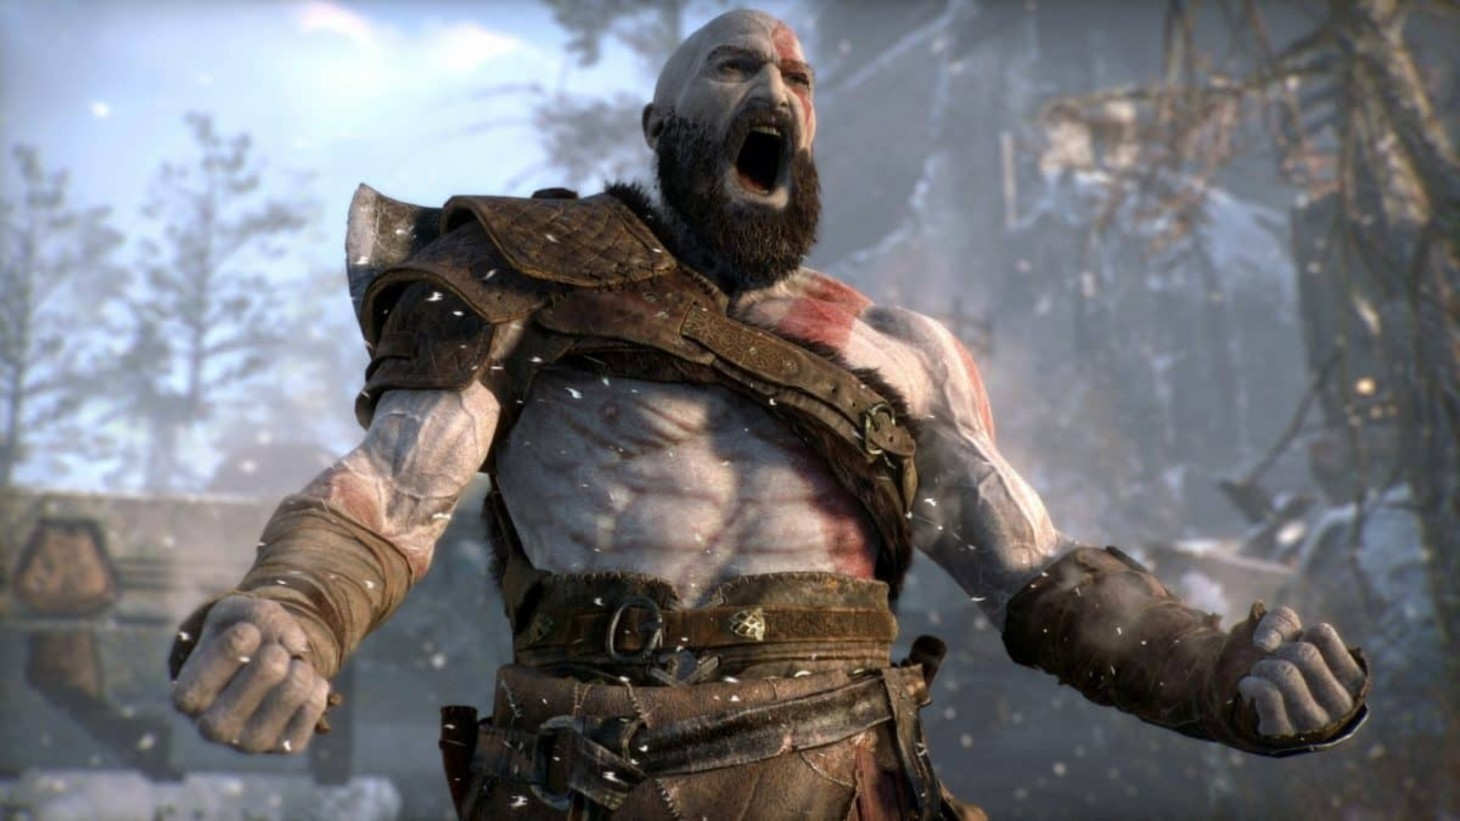 It Looks Like Kratos May Be Heading To Fortnite - Game Informer